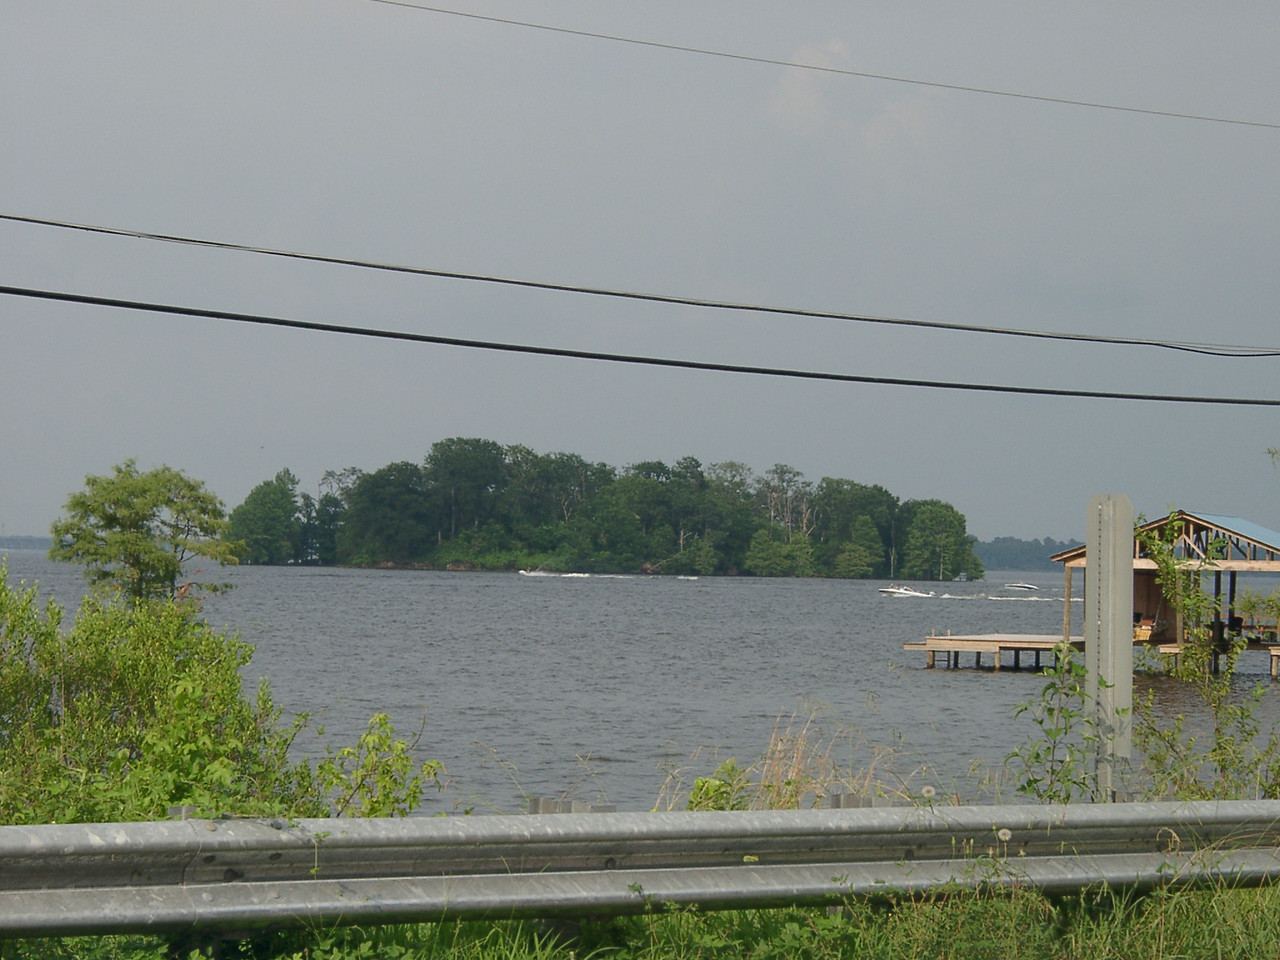 Here's a view of Cross Lake and the island we used to go kneeboarding around.